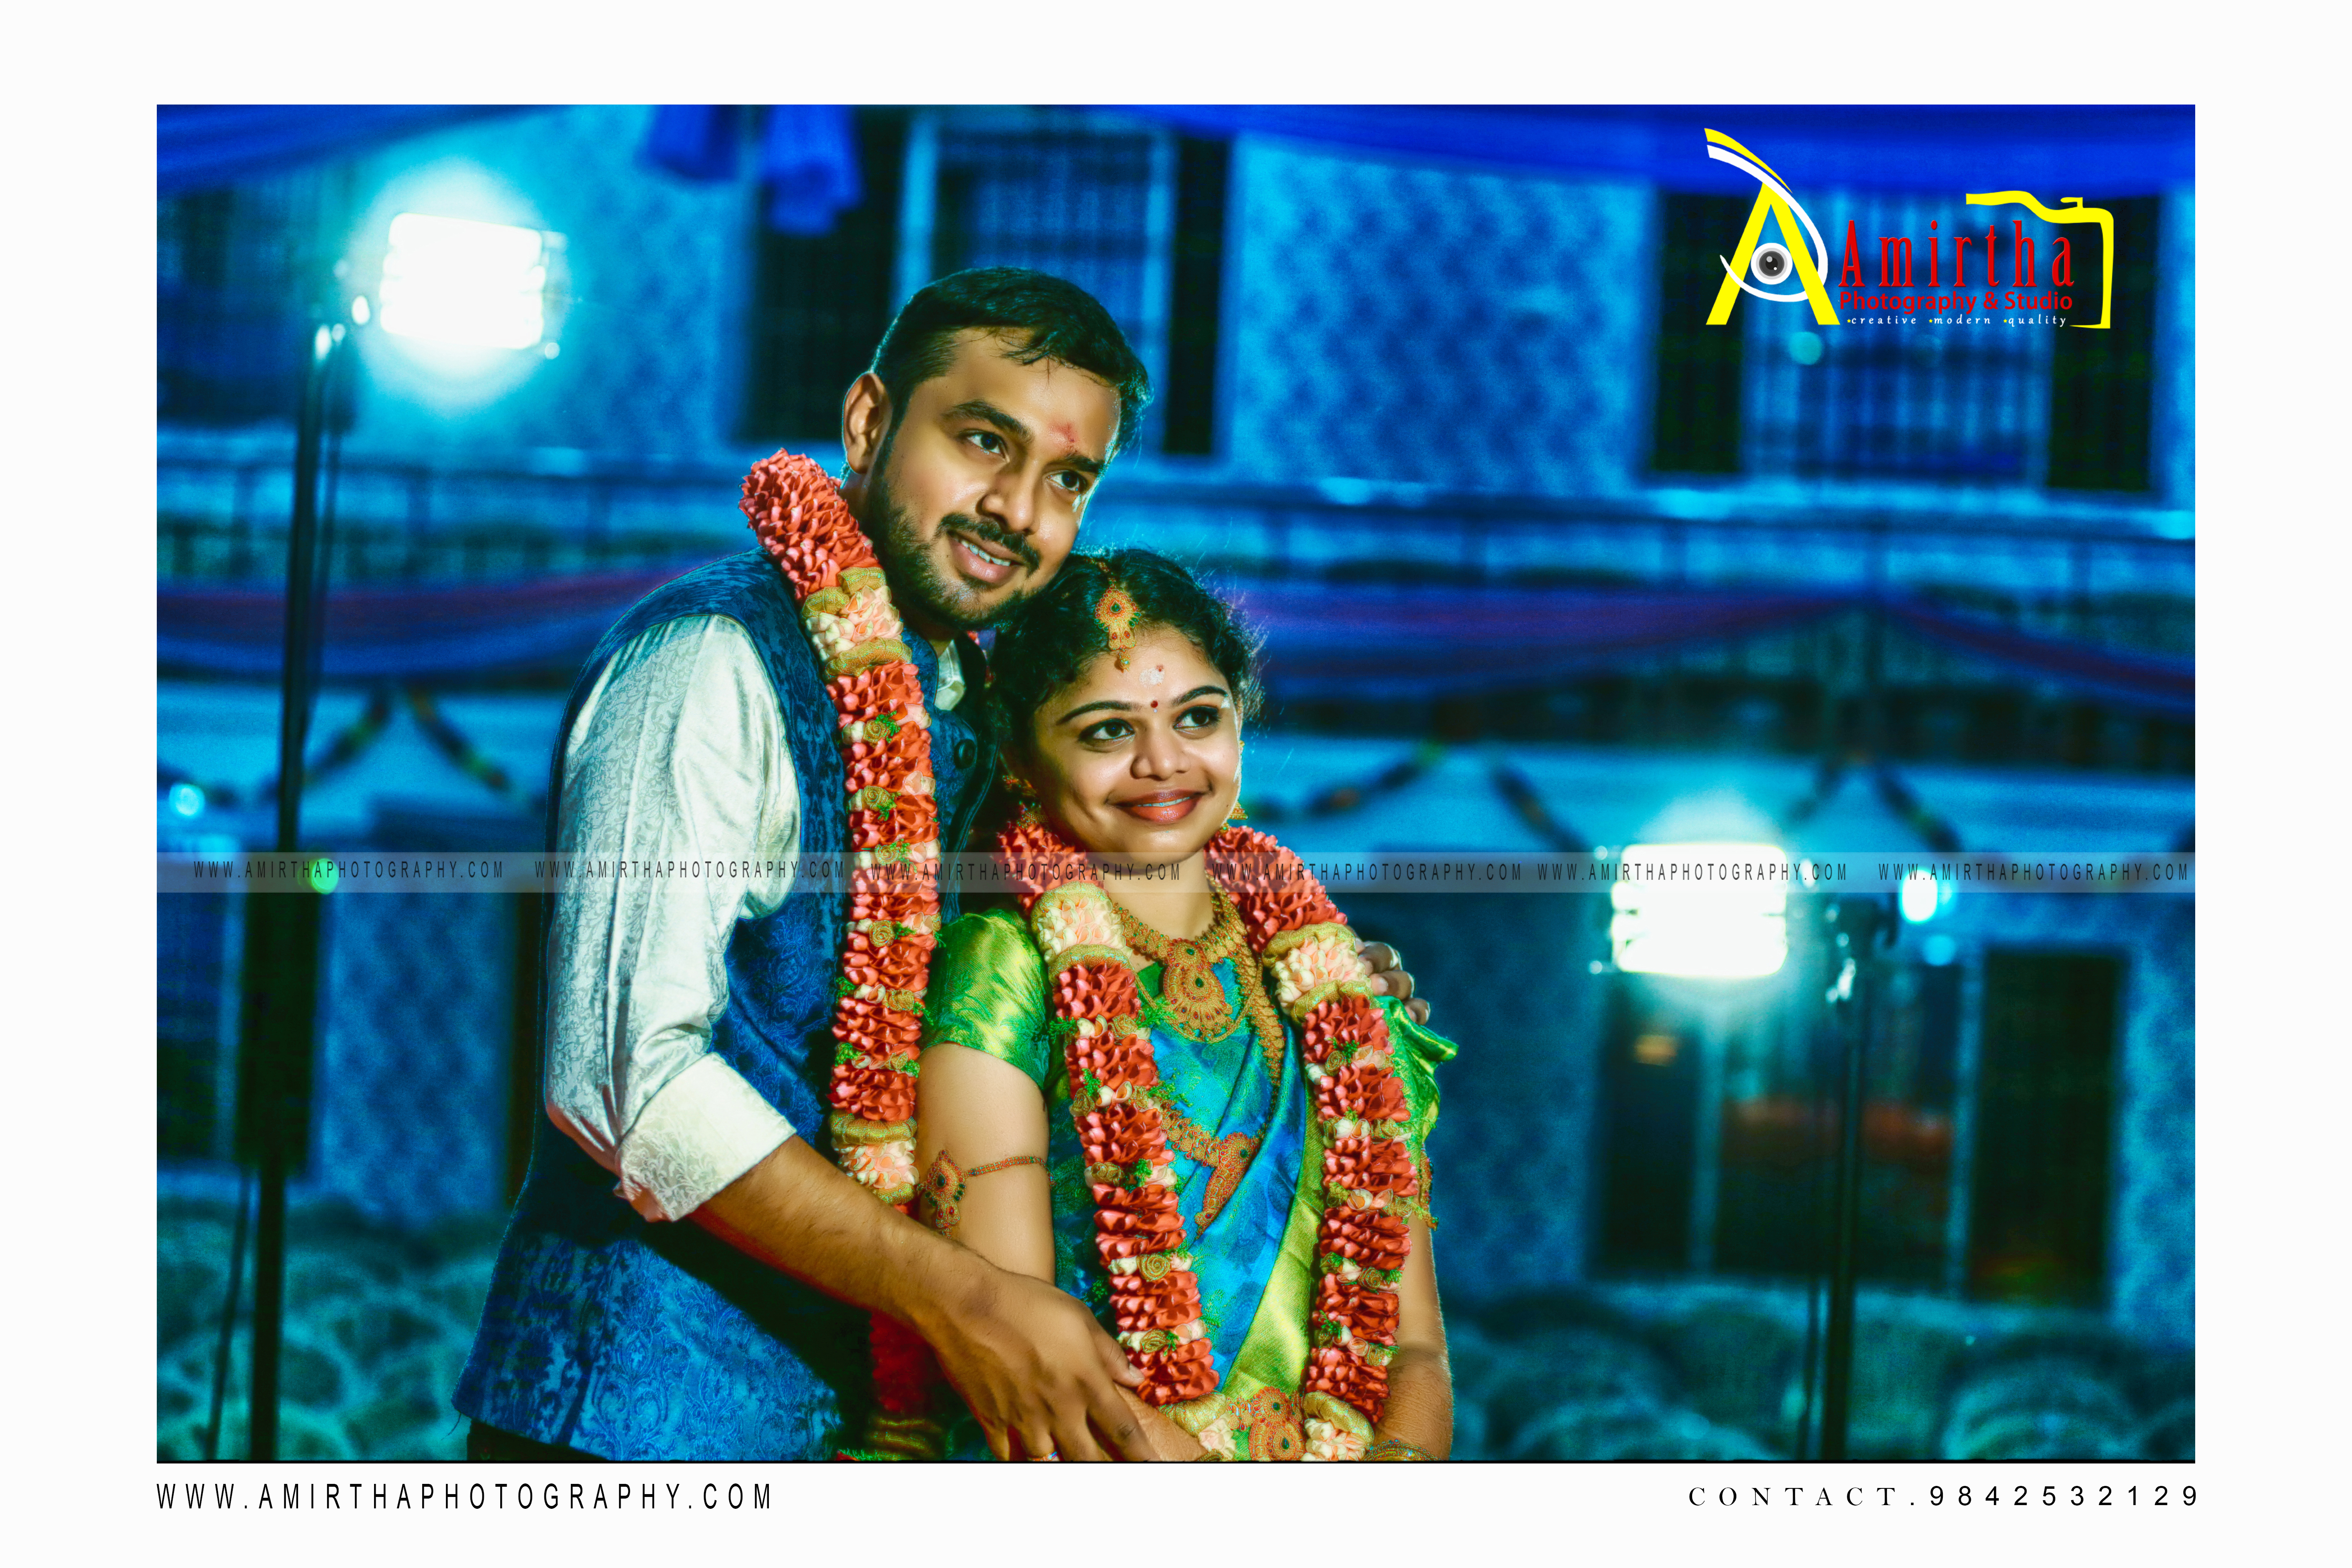 Candid Wedding Photography & Photographers in Aruppukottai